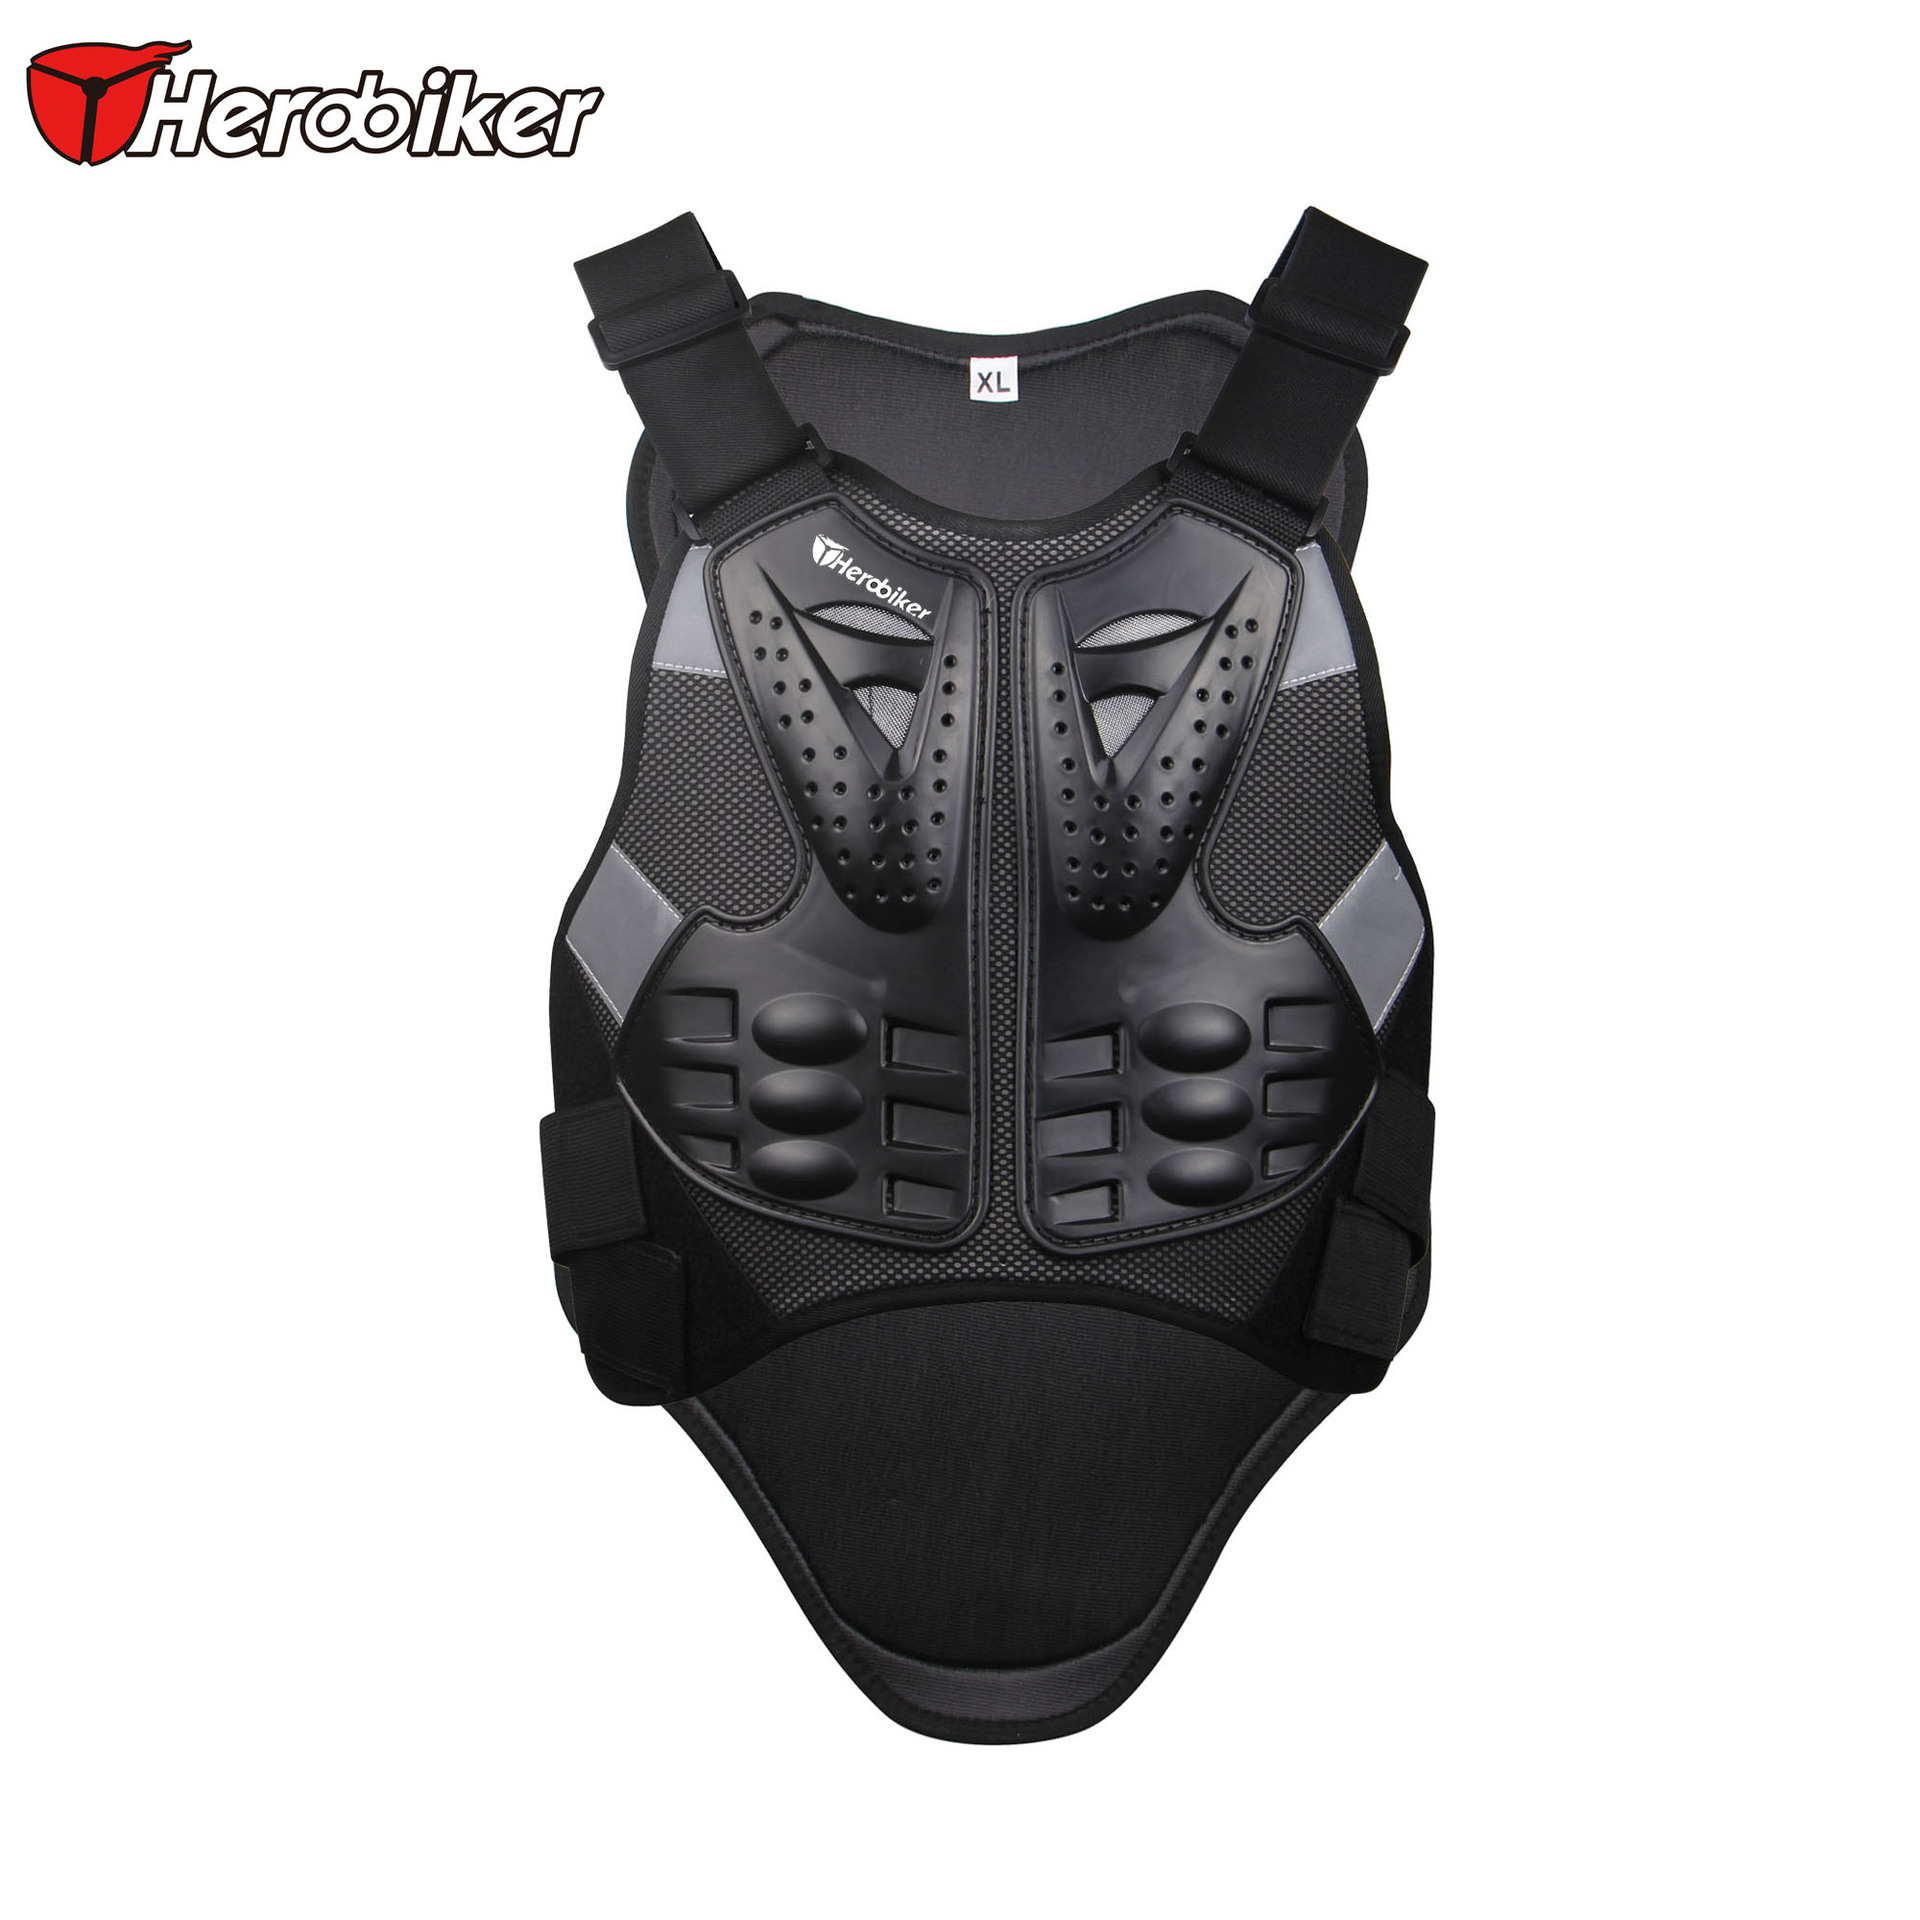 Komine Jacket Hot Sale 2016 Herobiker Ski Gear Motorcycle Armor Vests Spine Care Combination Sports Protectors Racing Mc102b(China (Mainland))